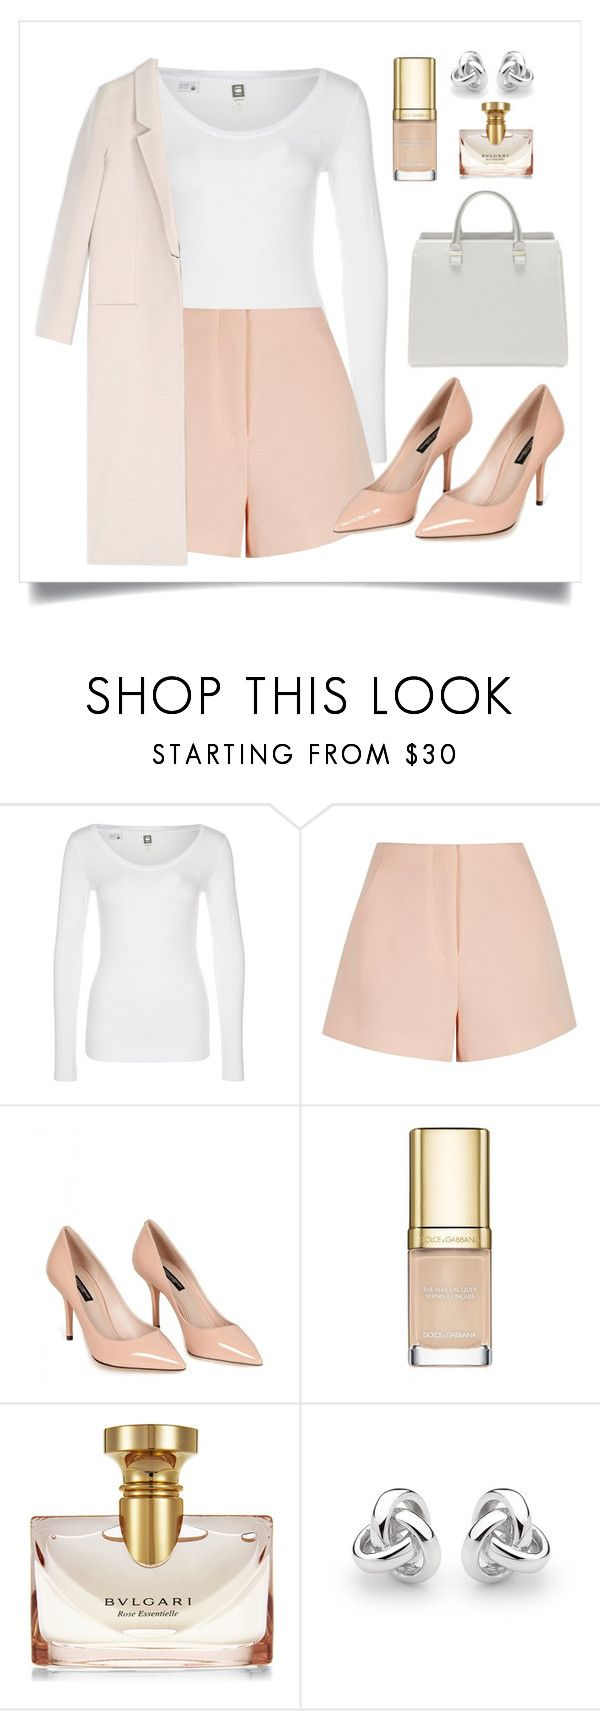 """""""#531"""" by krisstinak ❤ liked on Polyvore featuring G-Star, Finders Keepers, Dolce&Gabbana, Bulgari, Georgini and Acne Studios"""